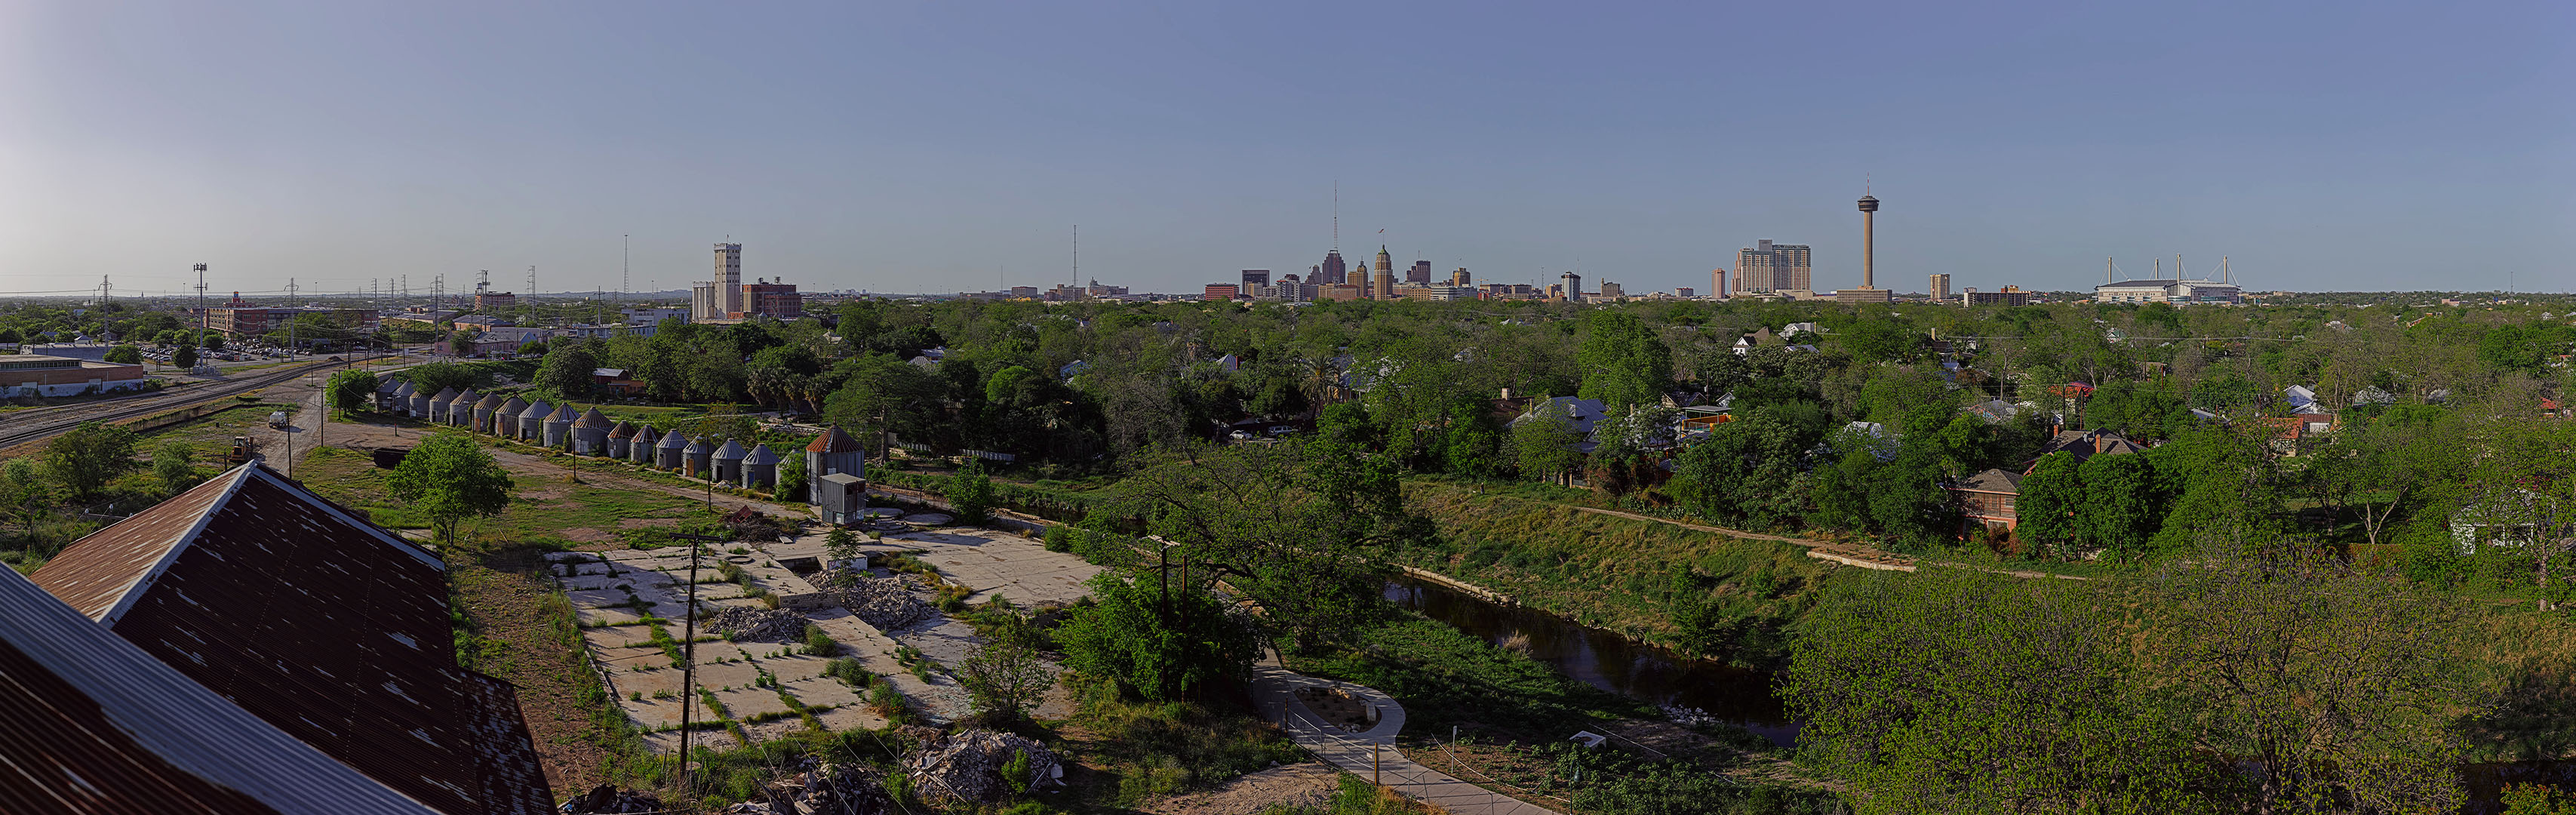 San_Antonio_Skyline_from_Southtown